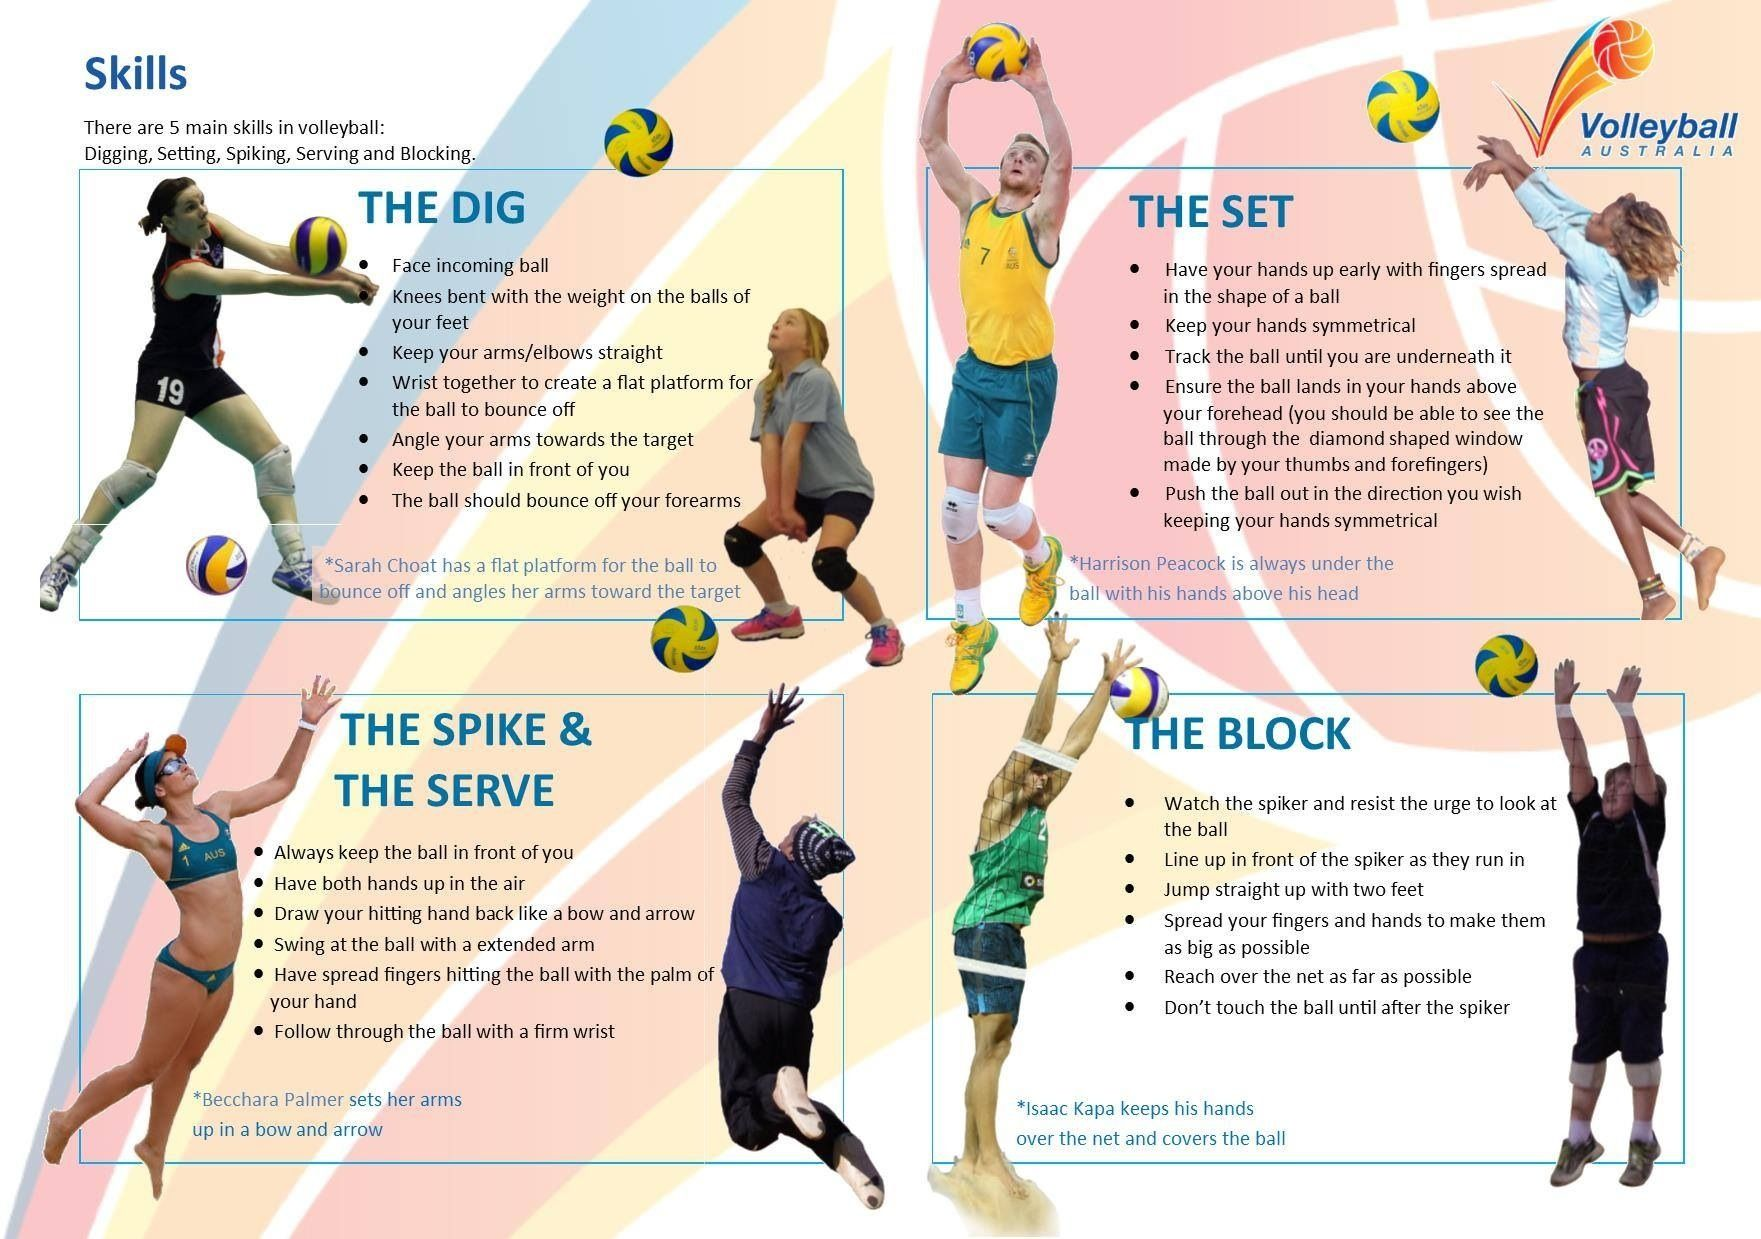 Volleyball Skills Volleyball Skills Model Provided By Volleyball Australia Volleyballskilldefinitio Volleyball Skills Coaching Volleyball Volleyball Tryouts